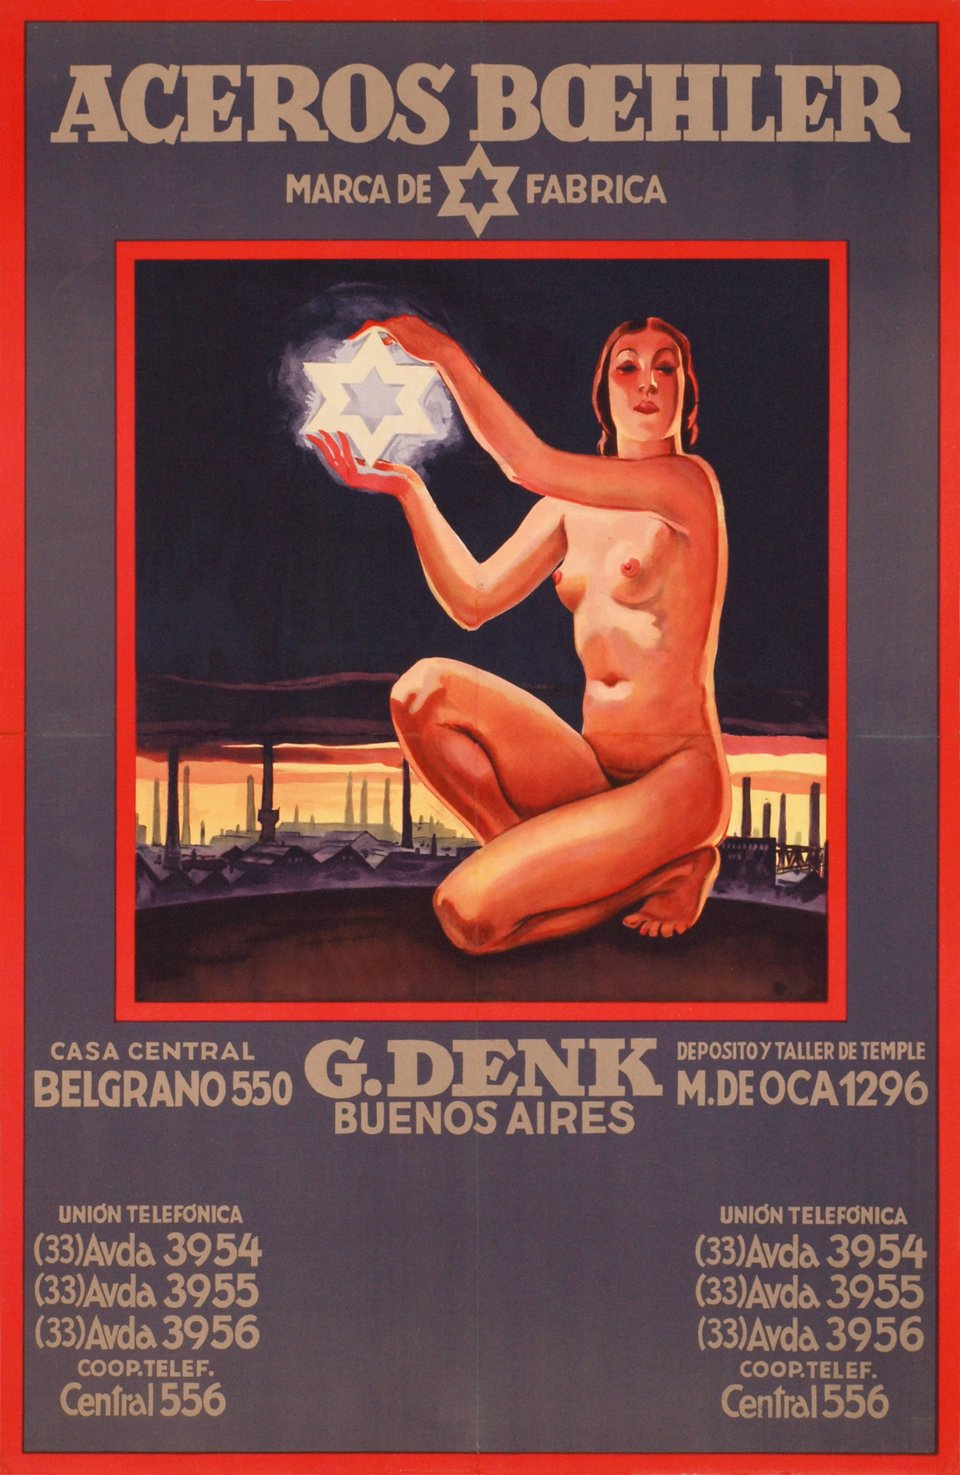 Aceros Boehler - Buenos Aires – Affiche ancienne – ANONYME – 1930